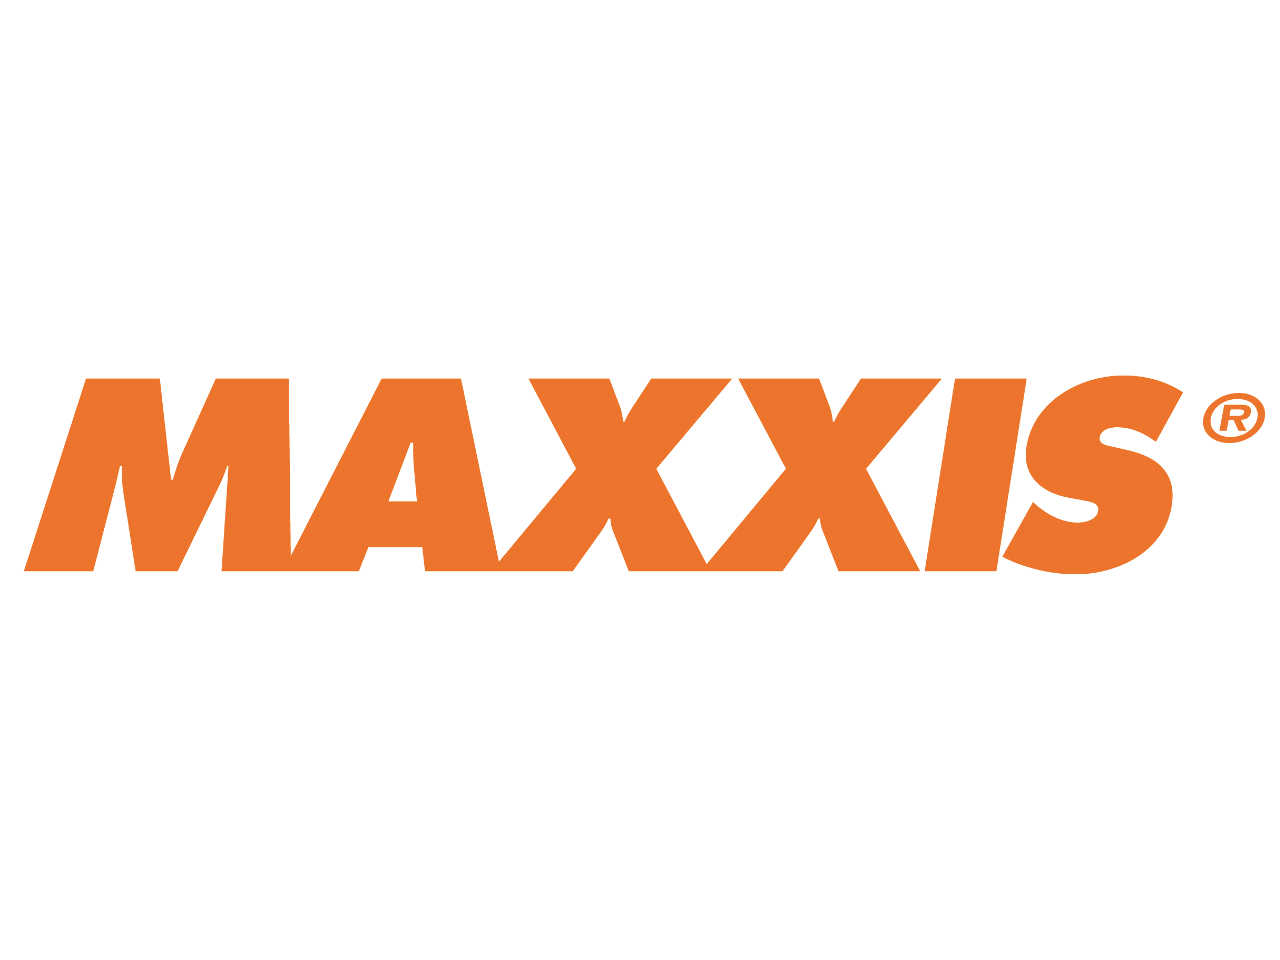 Maxxis will be the presenting sponsor of the AMSOIL Grand National ...